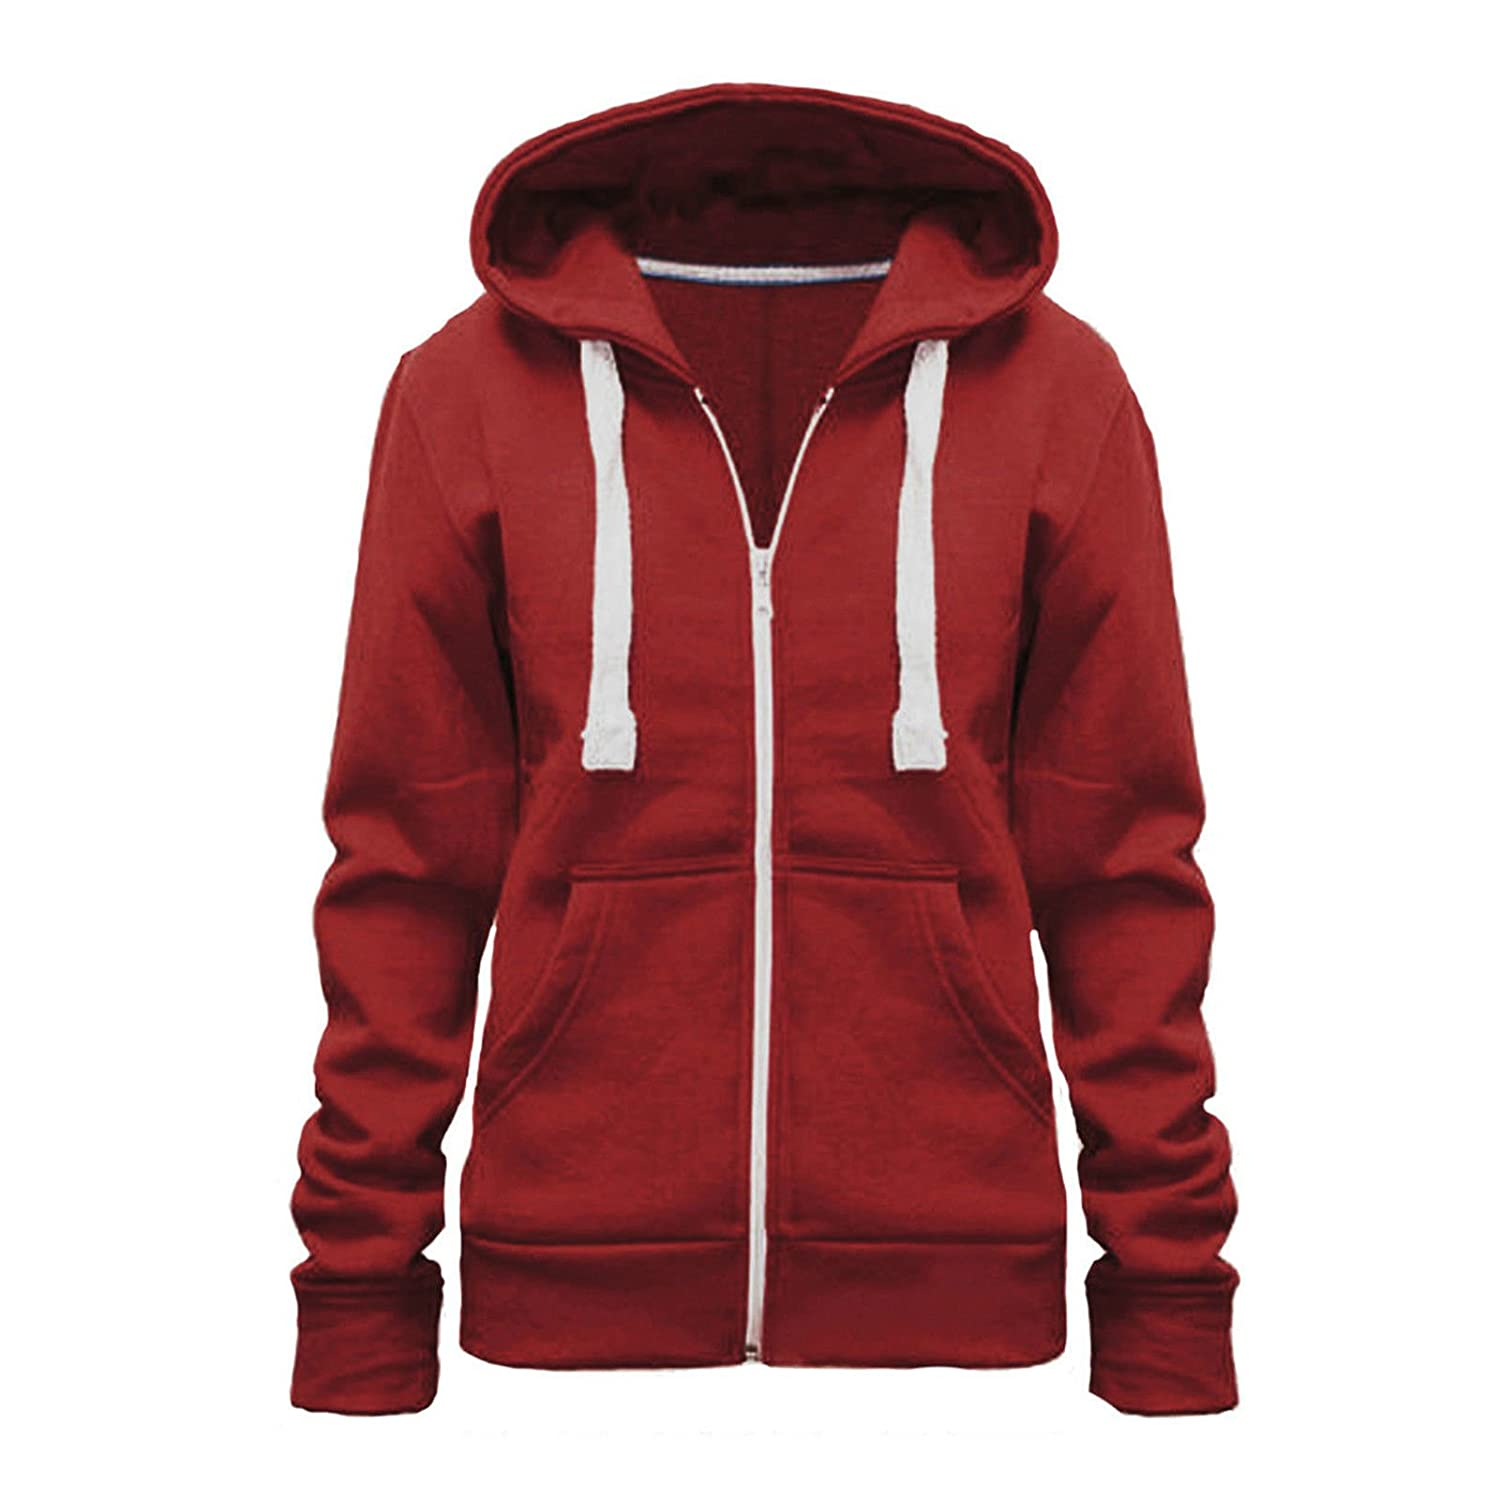 ASBAHFASHION Ladies-Sweatshirt-Zip-Jacket-Coat-Hoodie-Plain-Fleece-Hooded-Hoody Ladies-Sweatshirt-Zip-Jacket-Coat-Hoodie-Jumper-Womens-Plain-Fleece-Hooded-Hoody From Size Small To 5XL